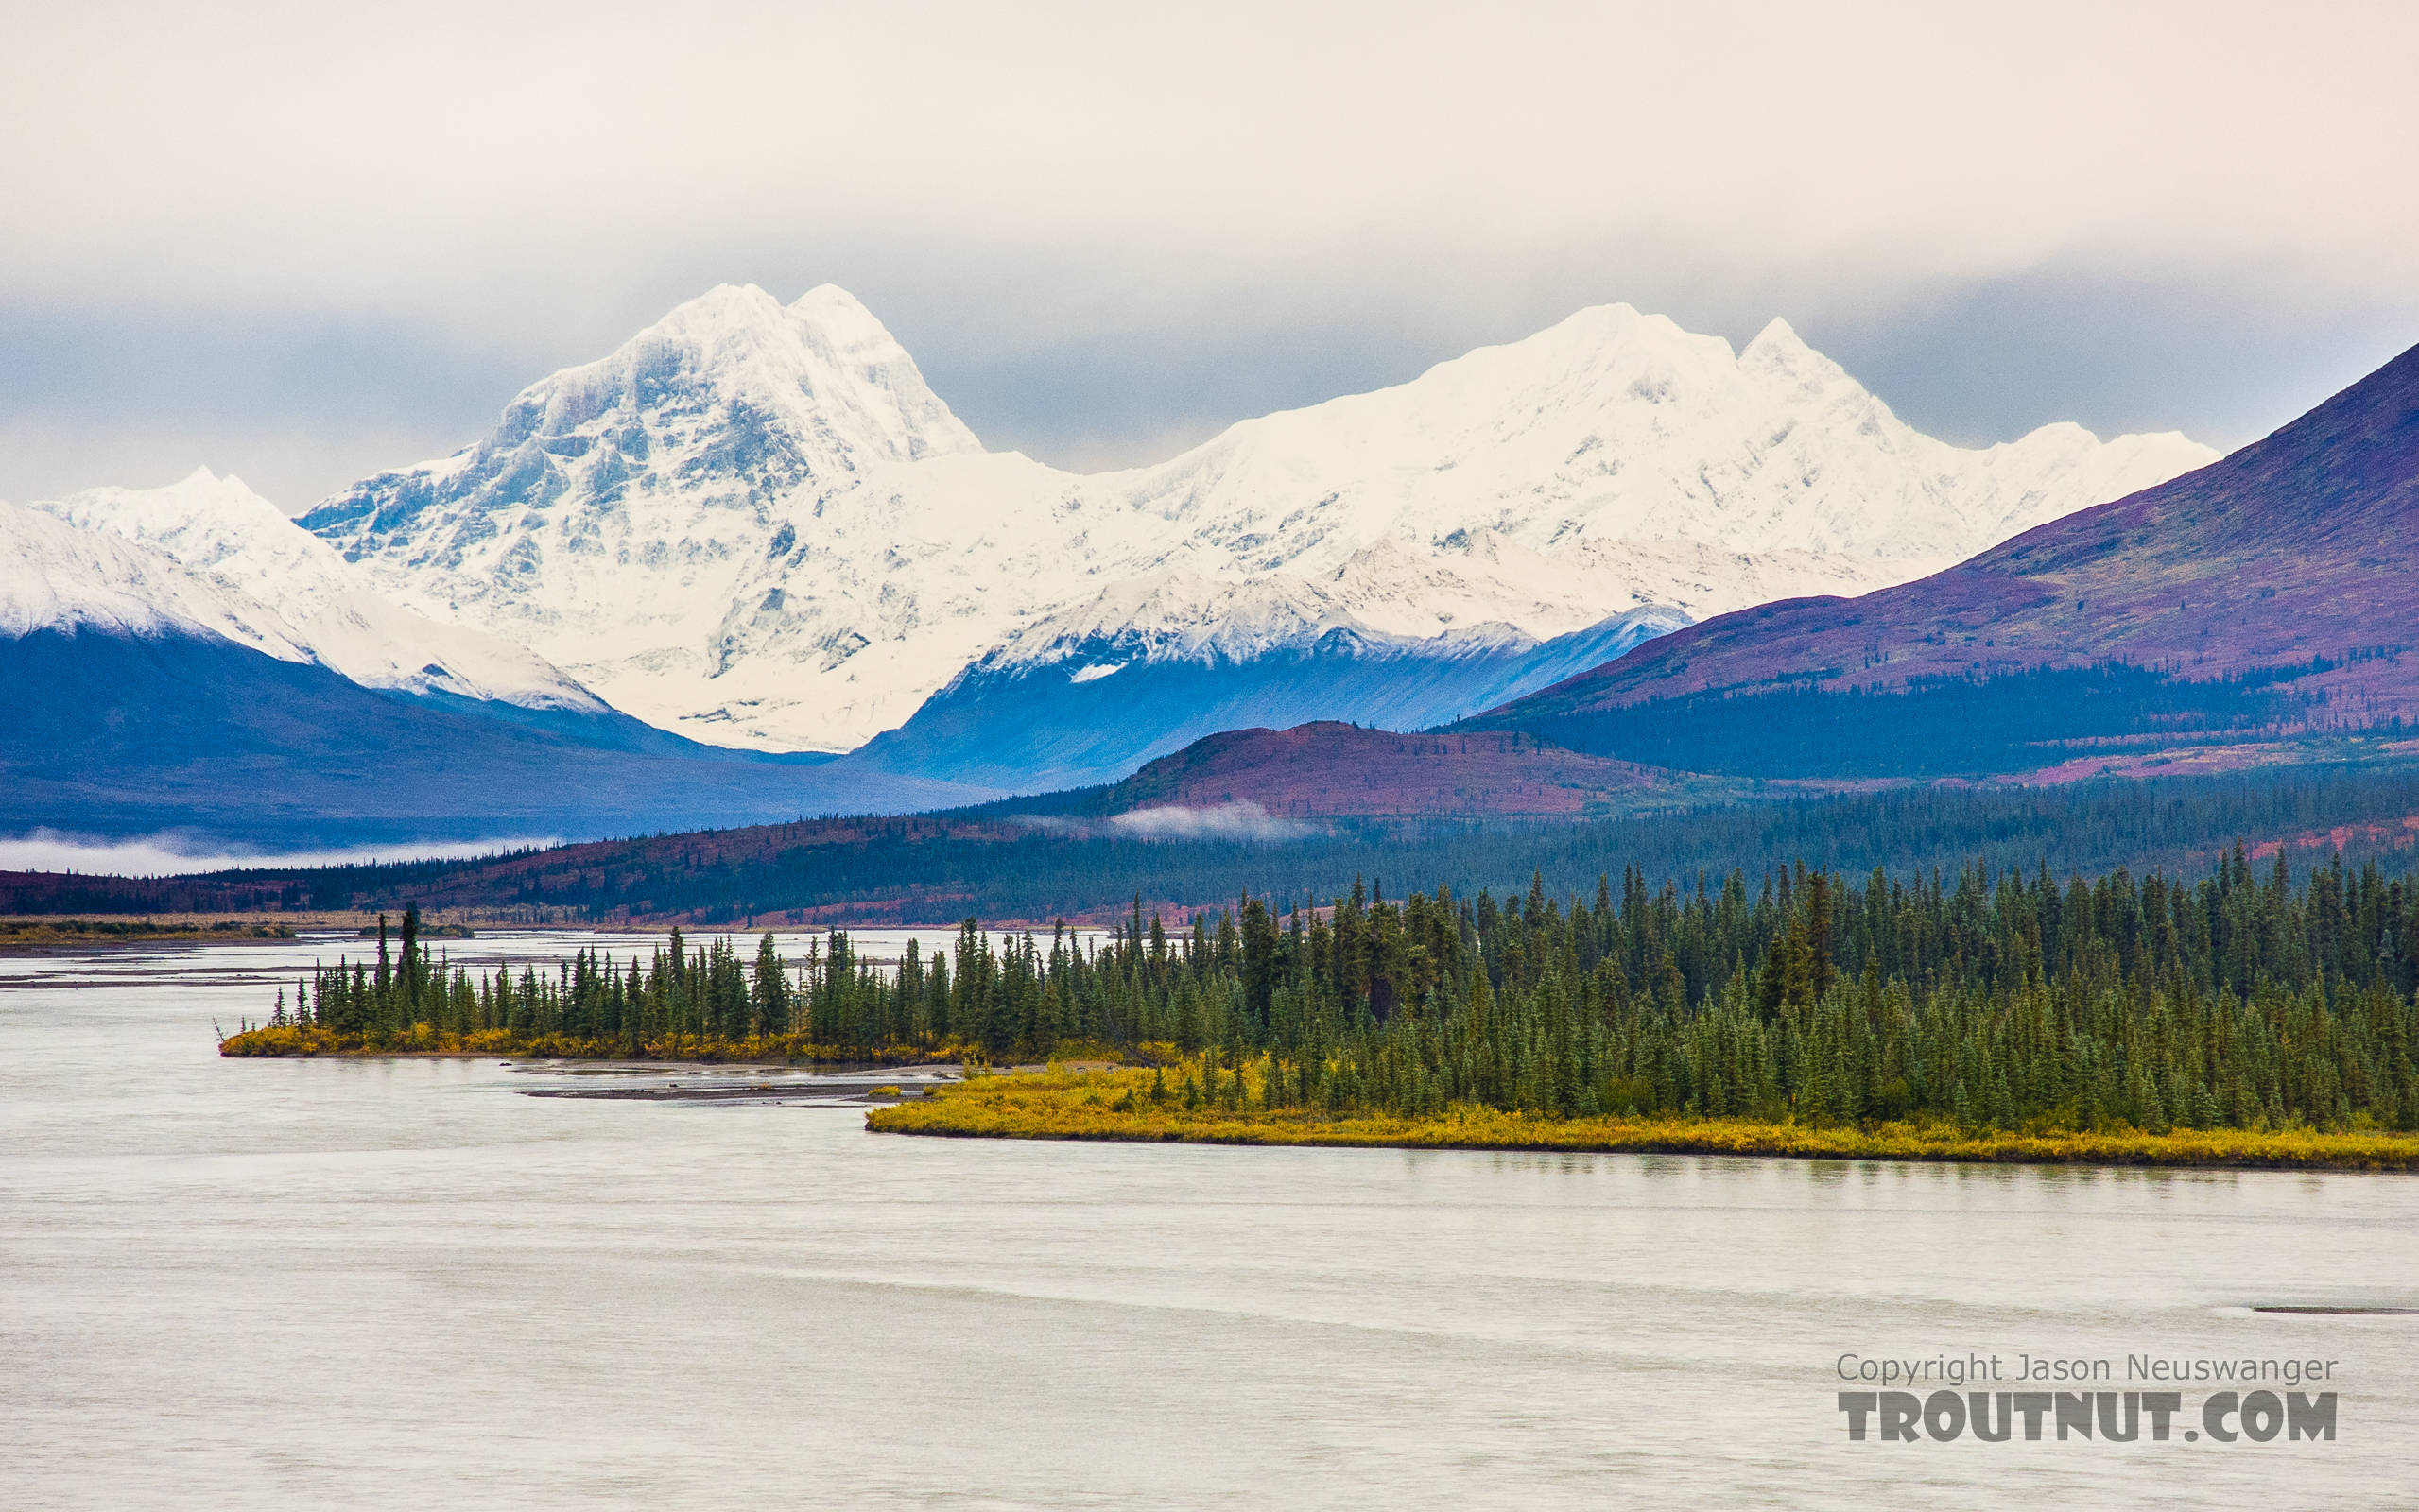 Alaska Range over the Susitna. Mount Deborah is on the left, and Hess Mountain is on the right. From the Susitna River in Alaska.